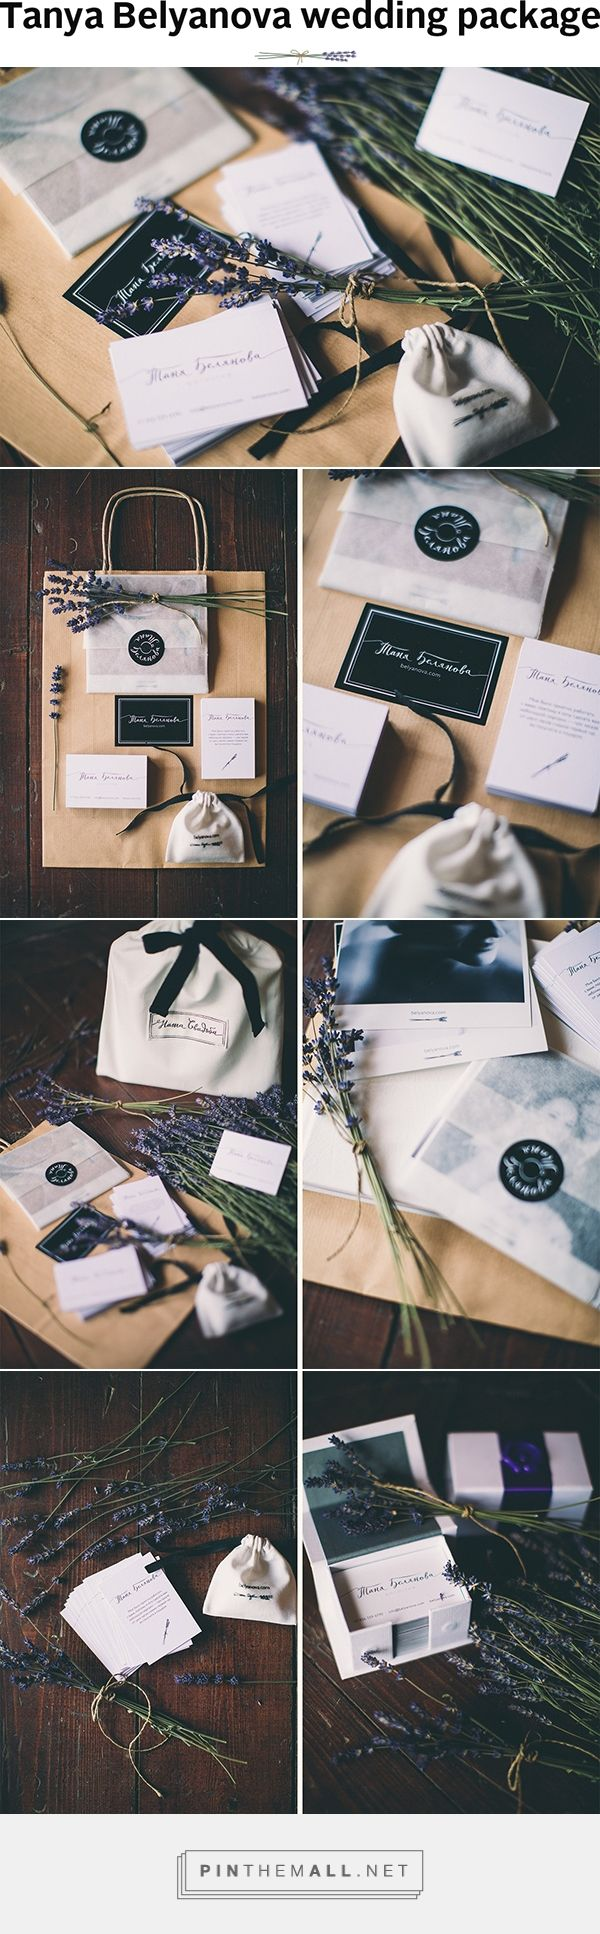 Tanya Belyanova wedding package on Behance by Andrey Gorbunov curated by Packaging Diva PD.  A wedding package for photographer Tanya Belyanova. Set includes a business card, discount card, envelope for photos, photobook pocket, flashcard case and packaging